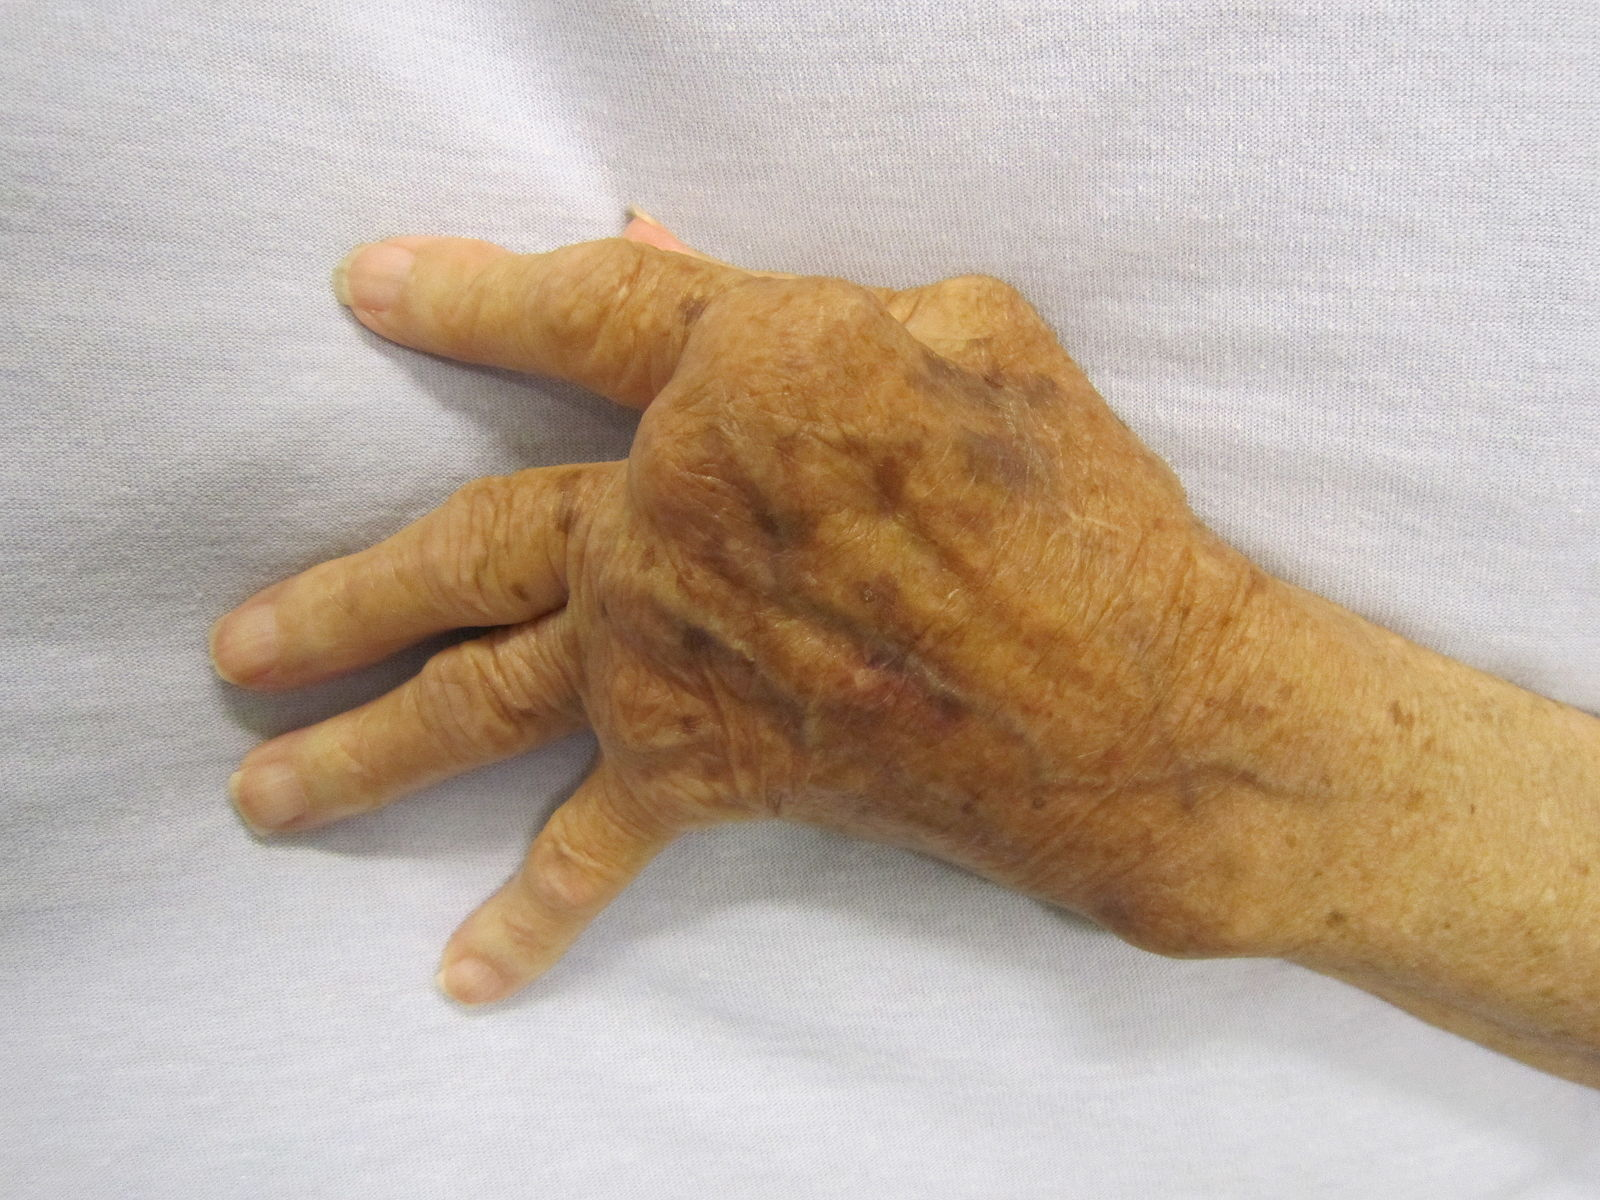 Difference Between Gout and Rheumatoid Arthritis